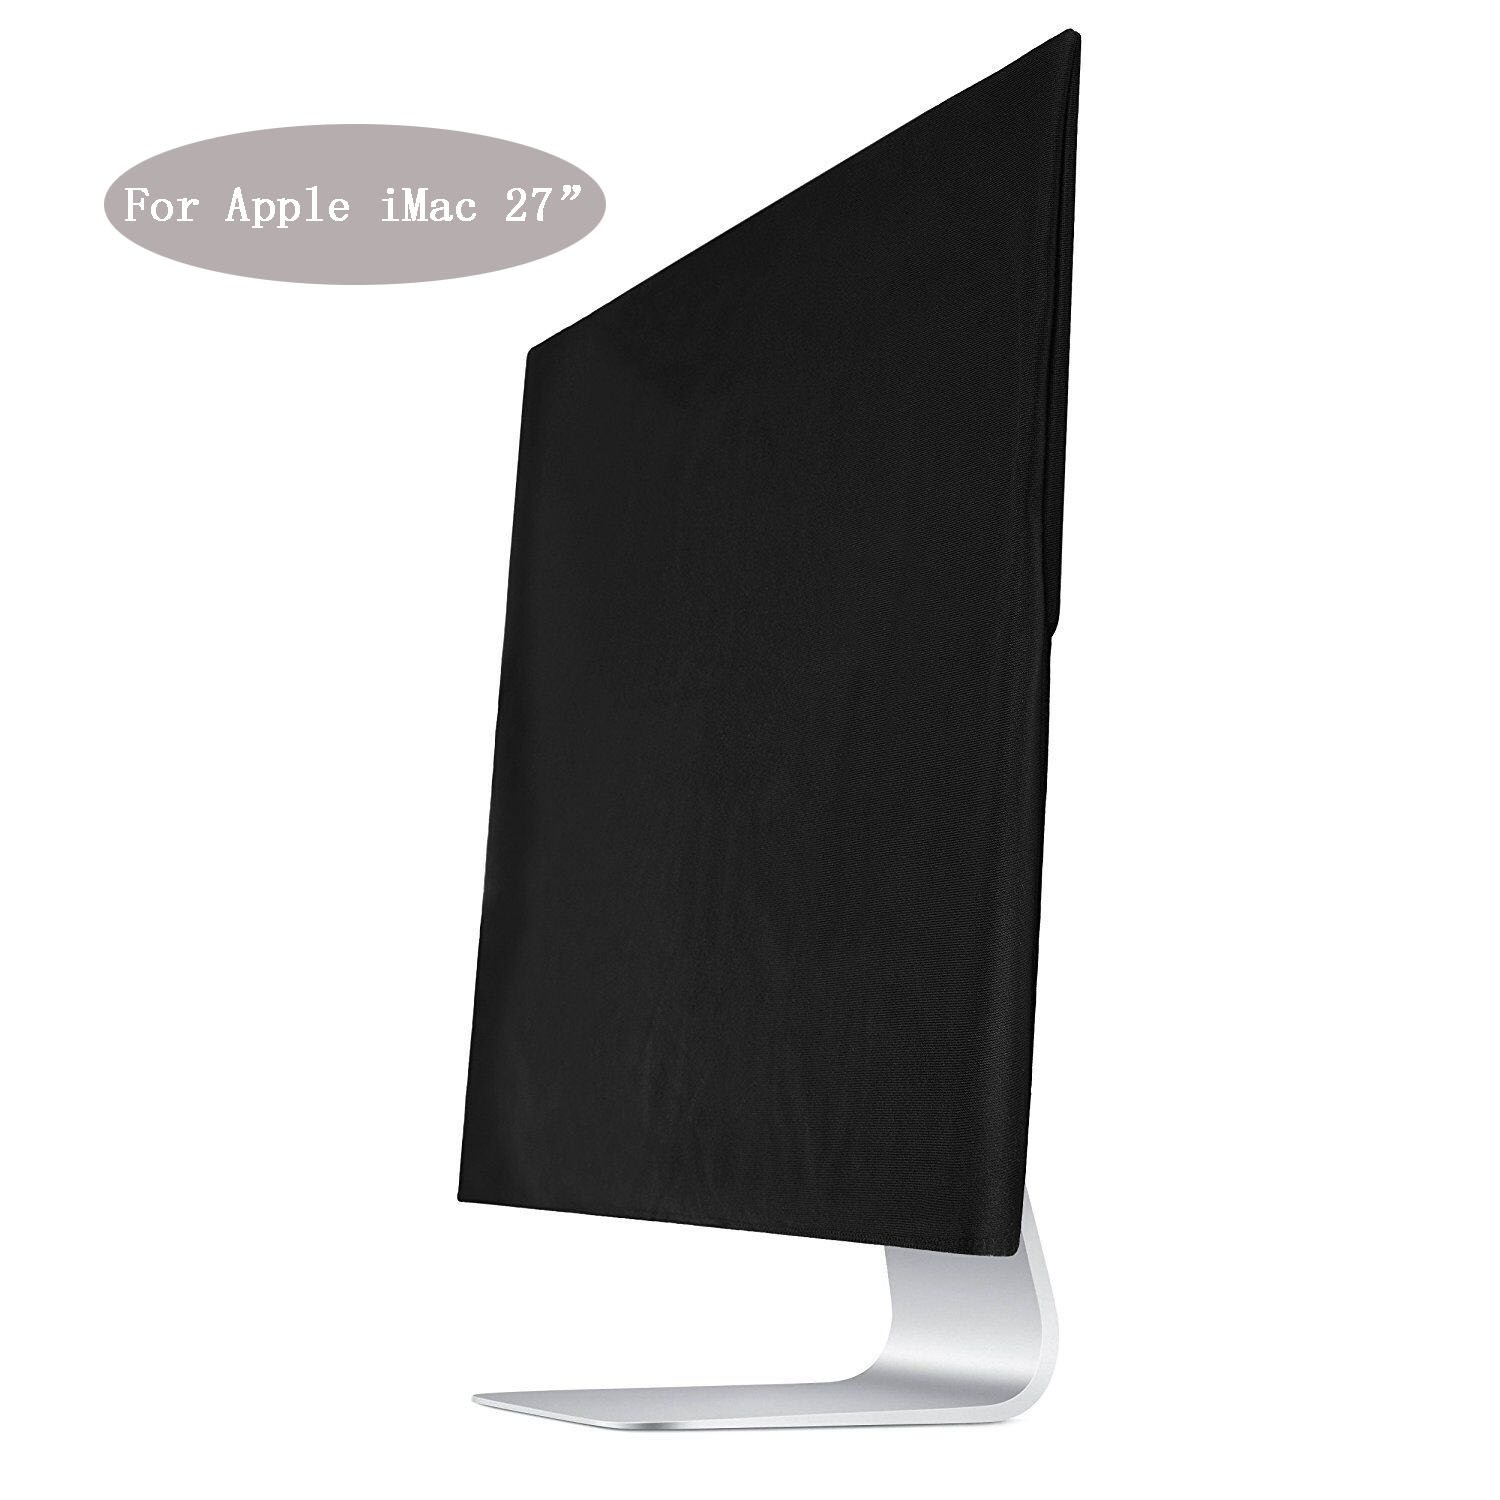 ASYOU Black Dust Screen Cover Sleeve for Apple iMac 27 Dust Cover,Display Protector(A1312 & A1419)